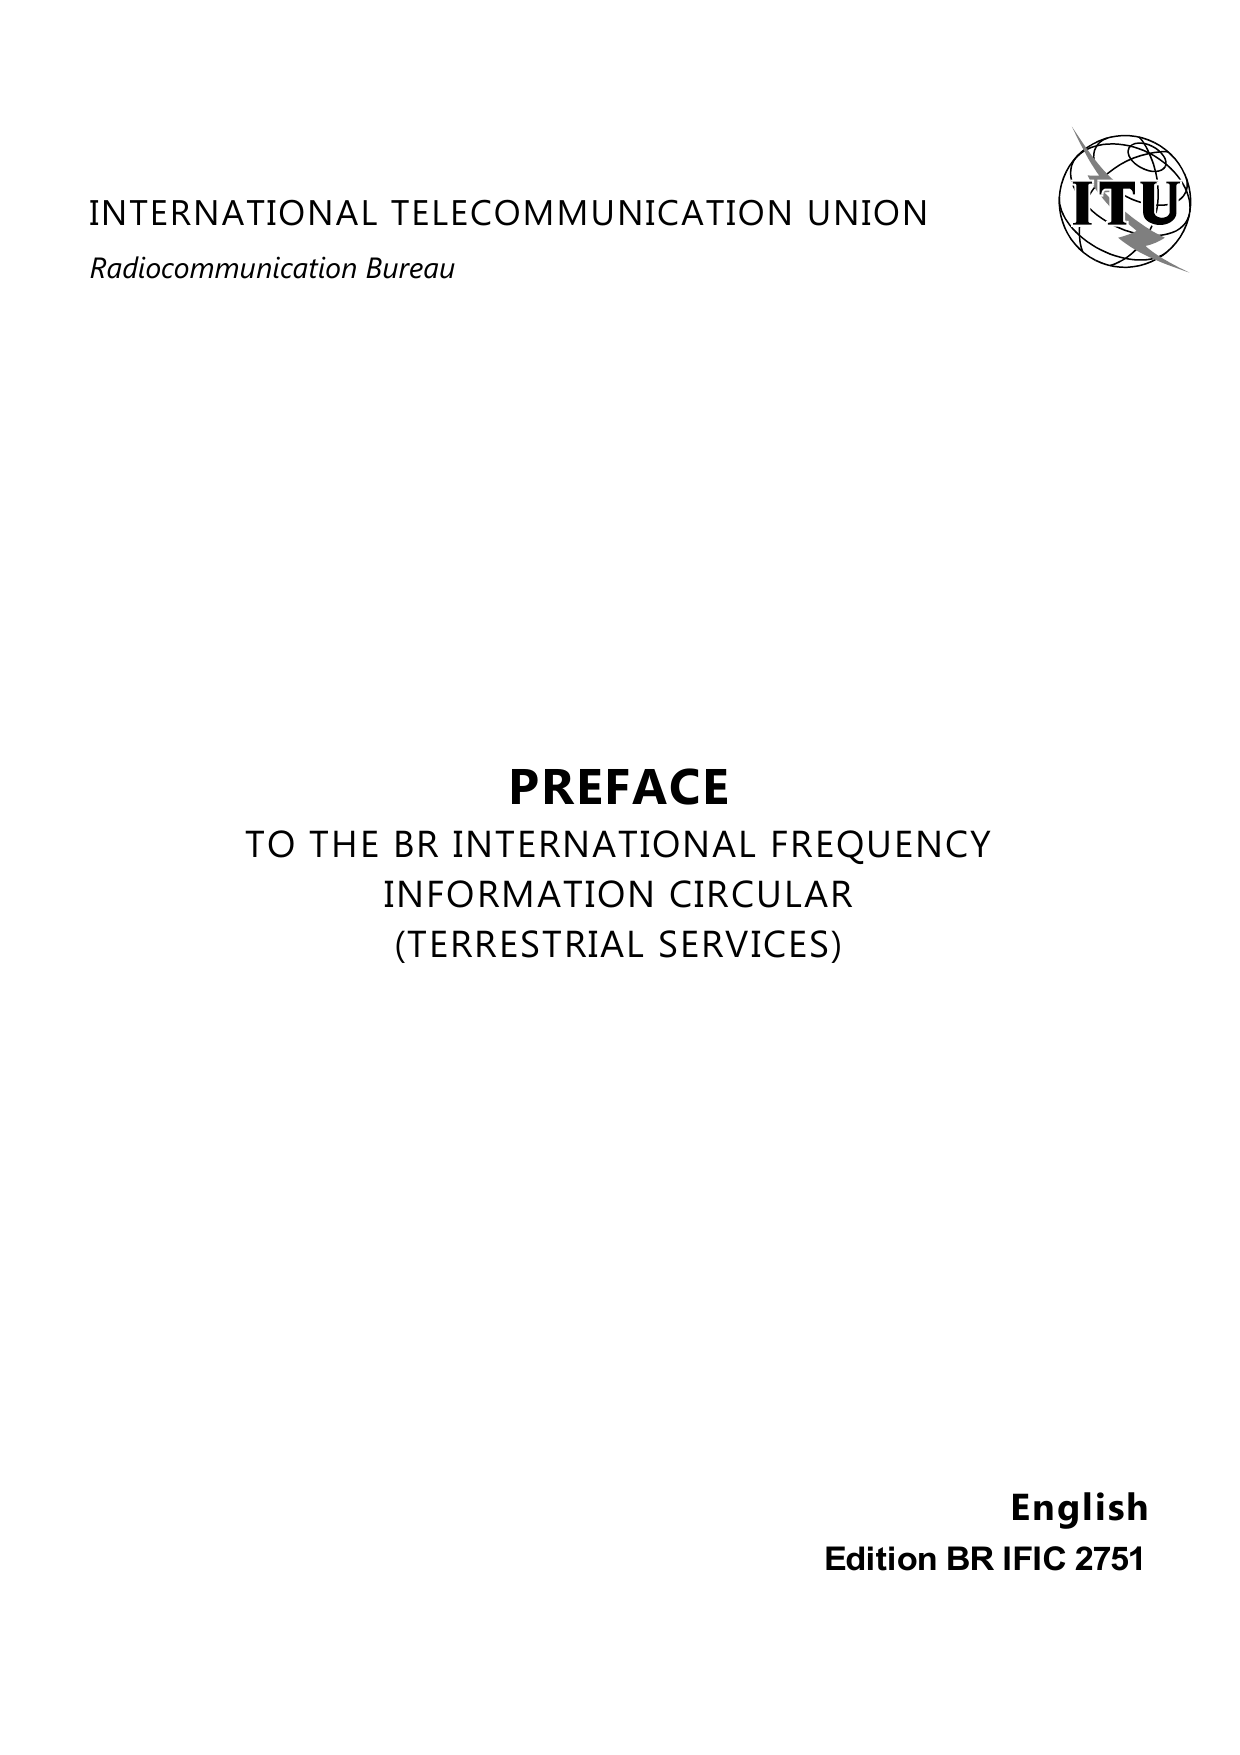 PREFACE TO THE BR INTERNATIONAL FREQUENCY INFORMATION CIRCULAR